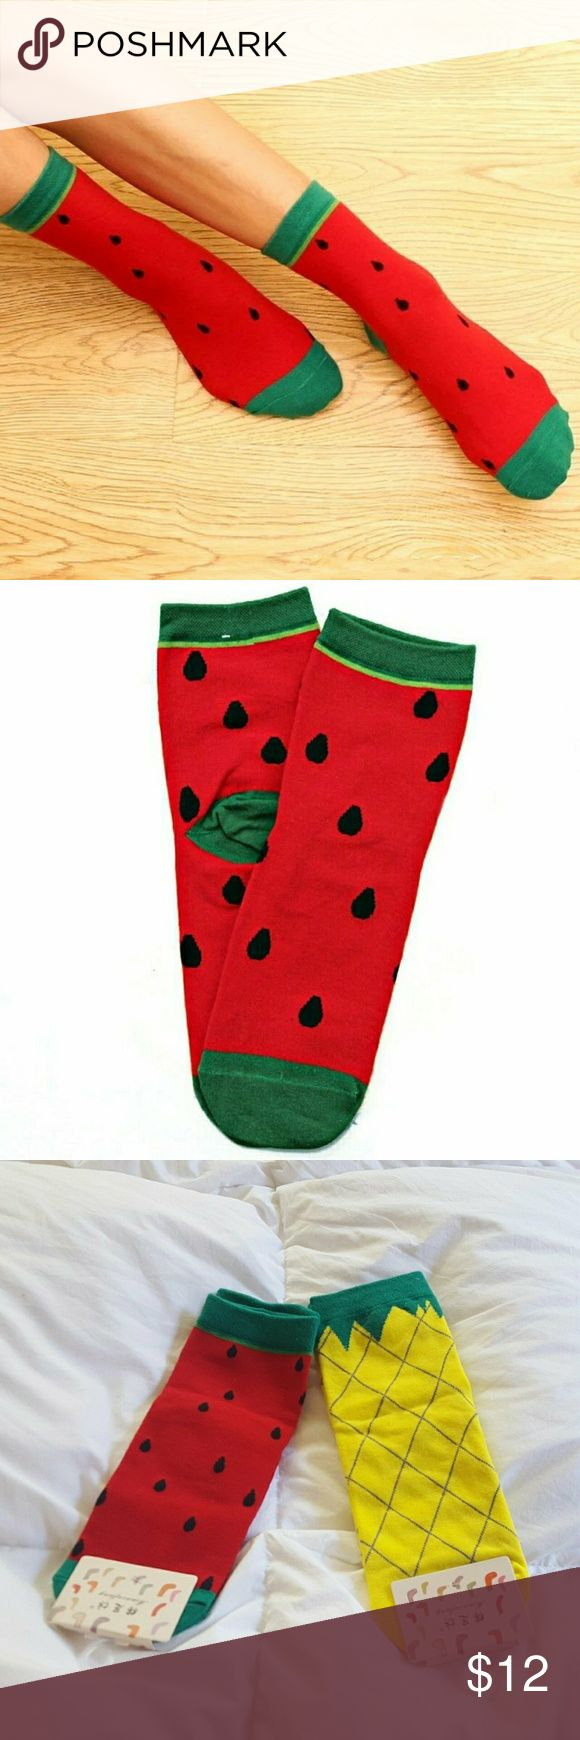 Quirky fruity strawberry watermelon ankle socks New with tags. Cutesy patootsie fruity watermelon loli quirky socks. One size.   These looks sooo great with juju jellies sandals and creepers ♡♡♡  🎄 Perfect stocking stuffers 🎄    ● 20% off on bundles     Fruits fruity watermelon strawberry berry socks ankle lolita kawaii pastel goth free alternative apparel notsopopularhobbit Accessories Hosiery & Socks